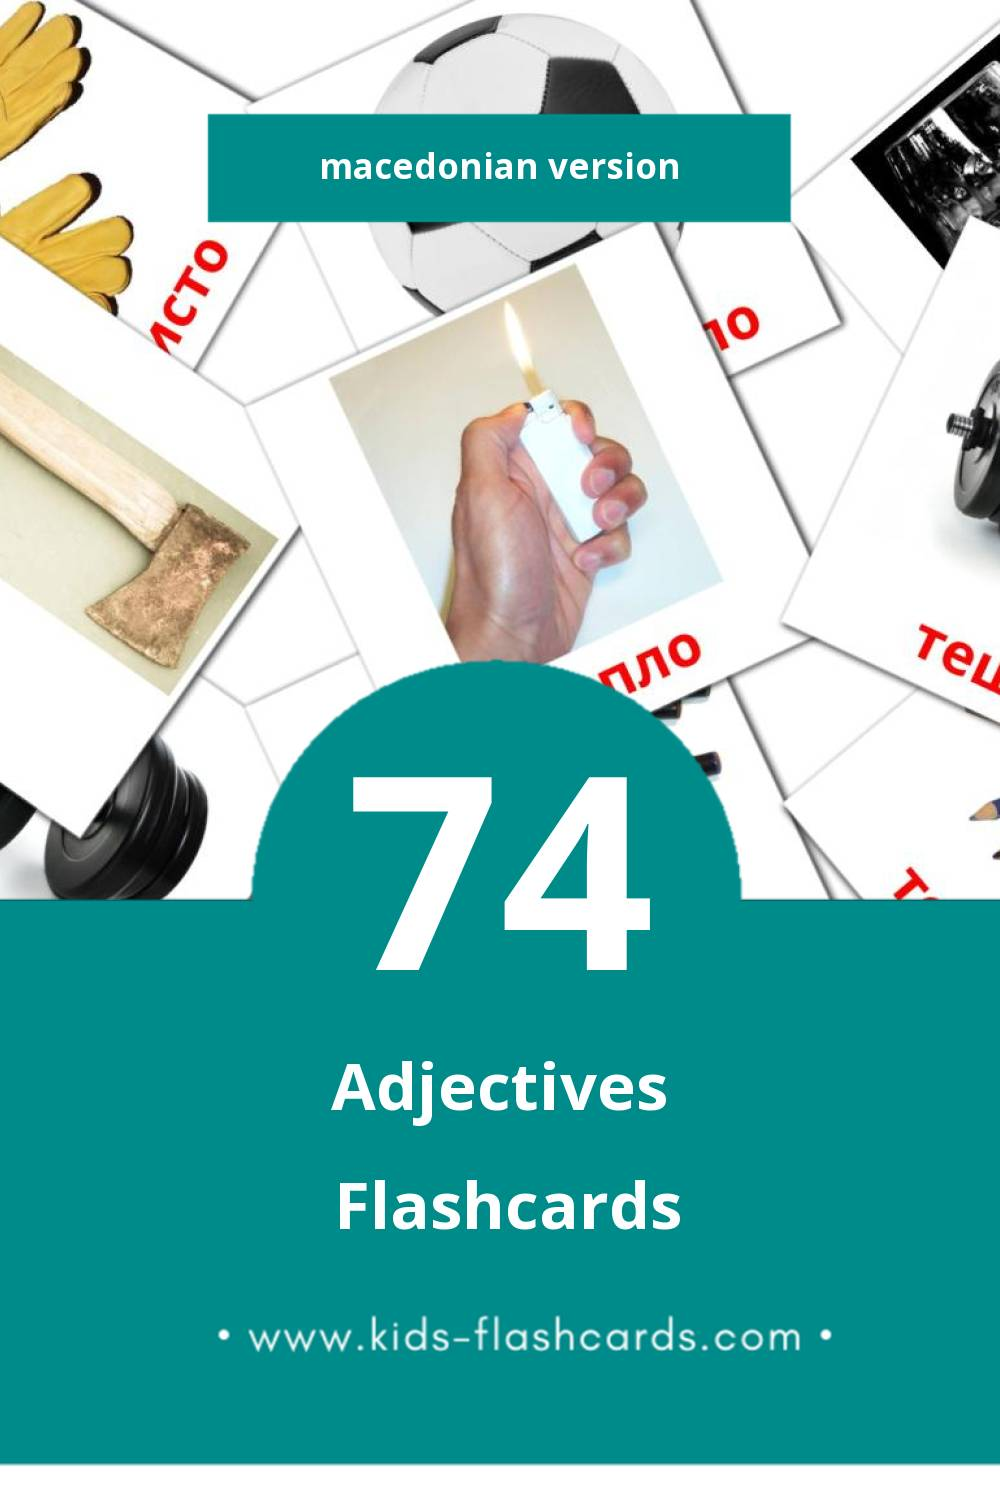 Visual Придавки Flashcards for Toddlers (74 cards in Macedonian)